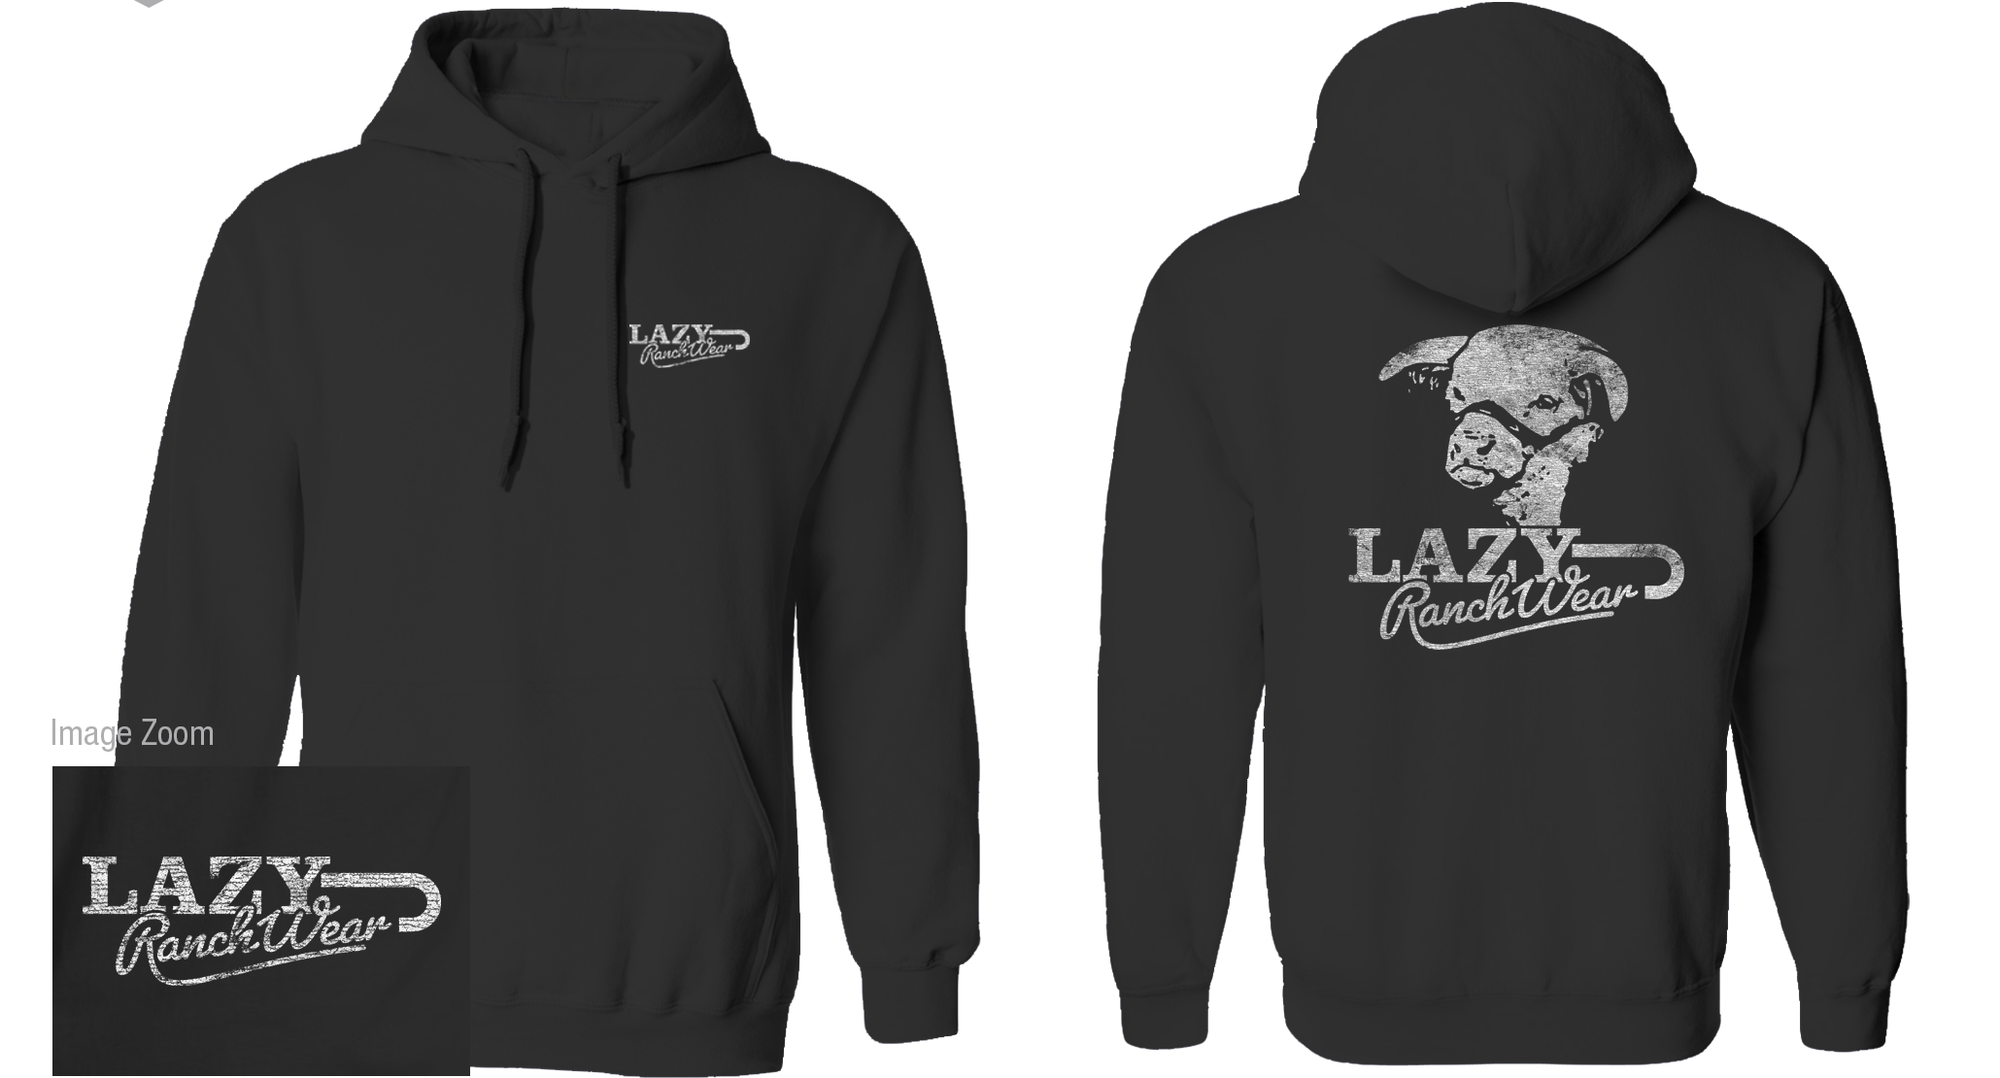 Lazy J Ranch Wear Black Retro Hoodie